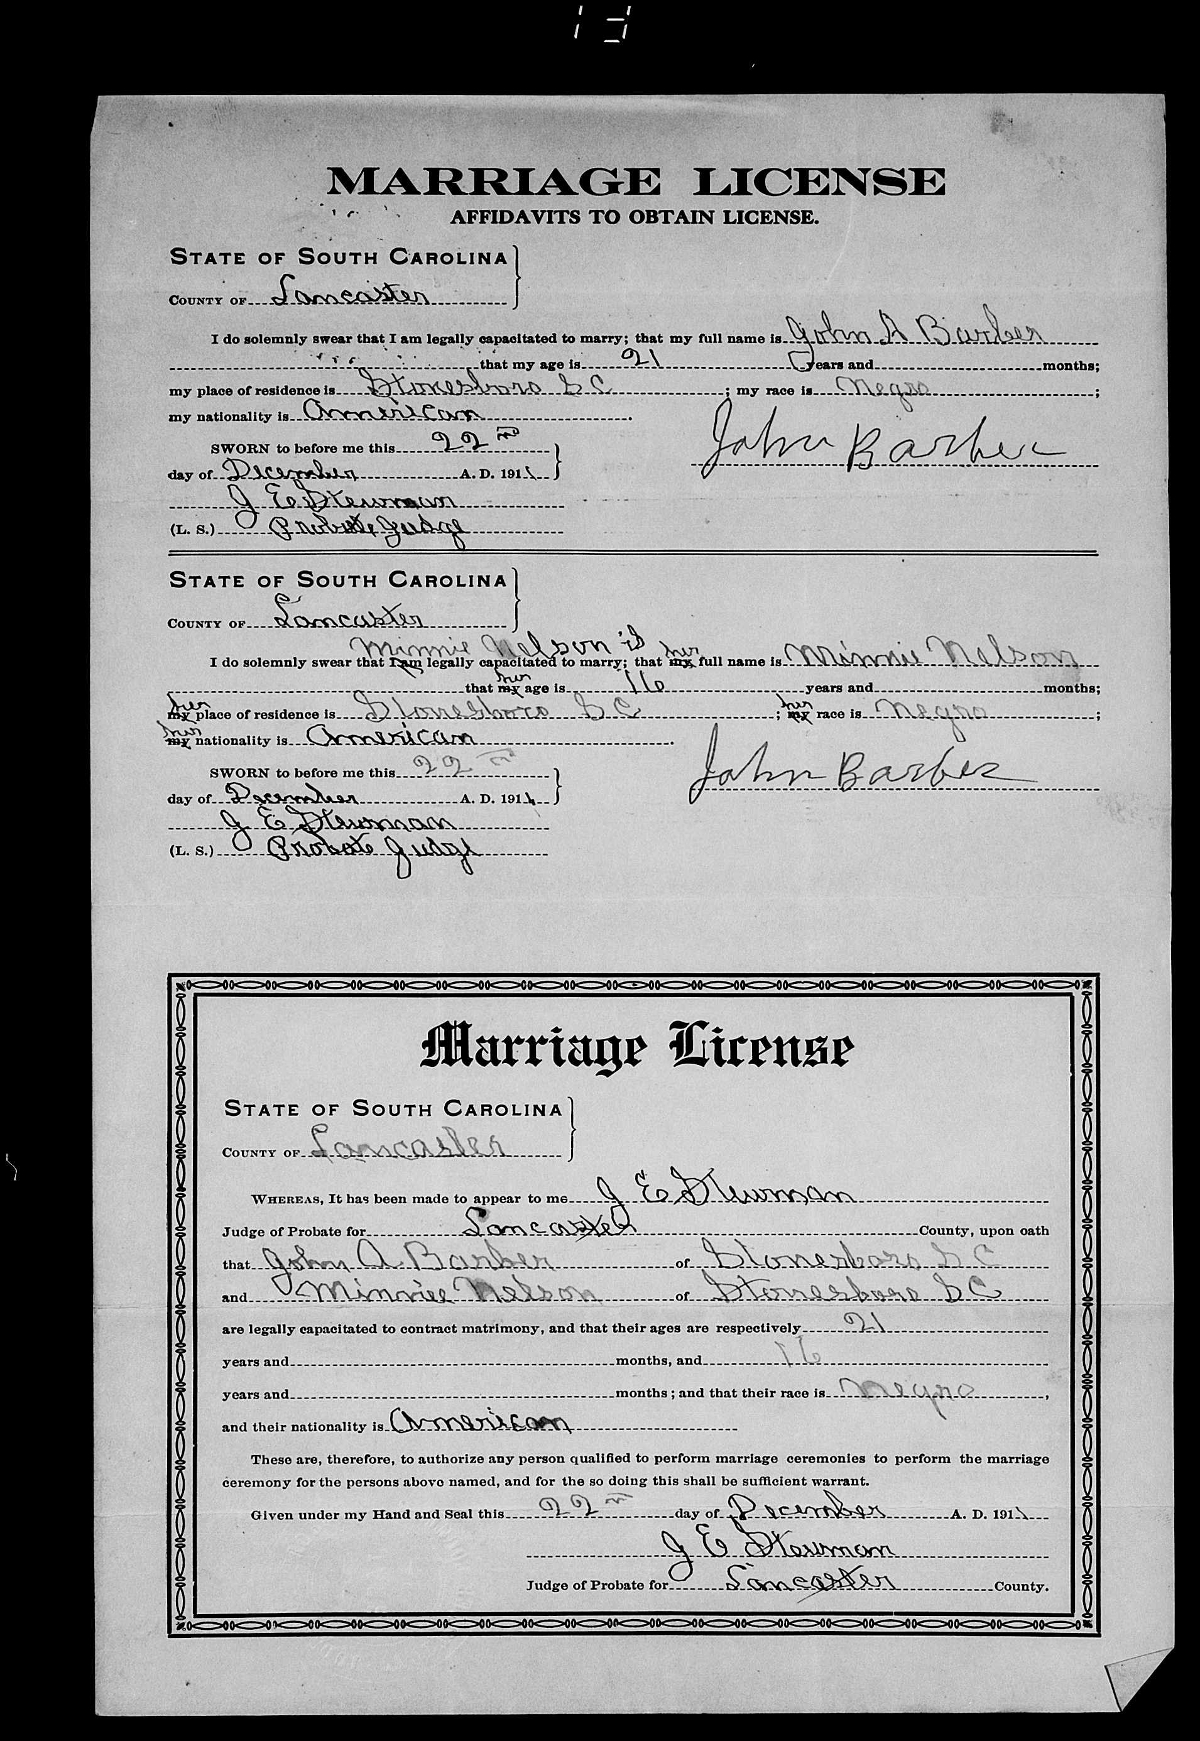 Beaufort county marriage license